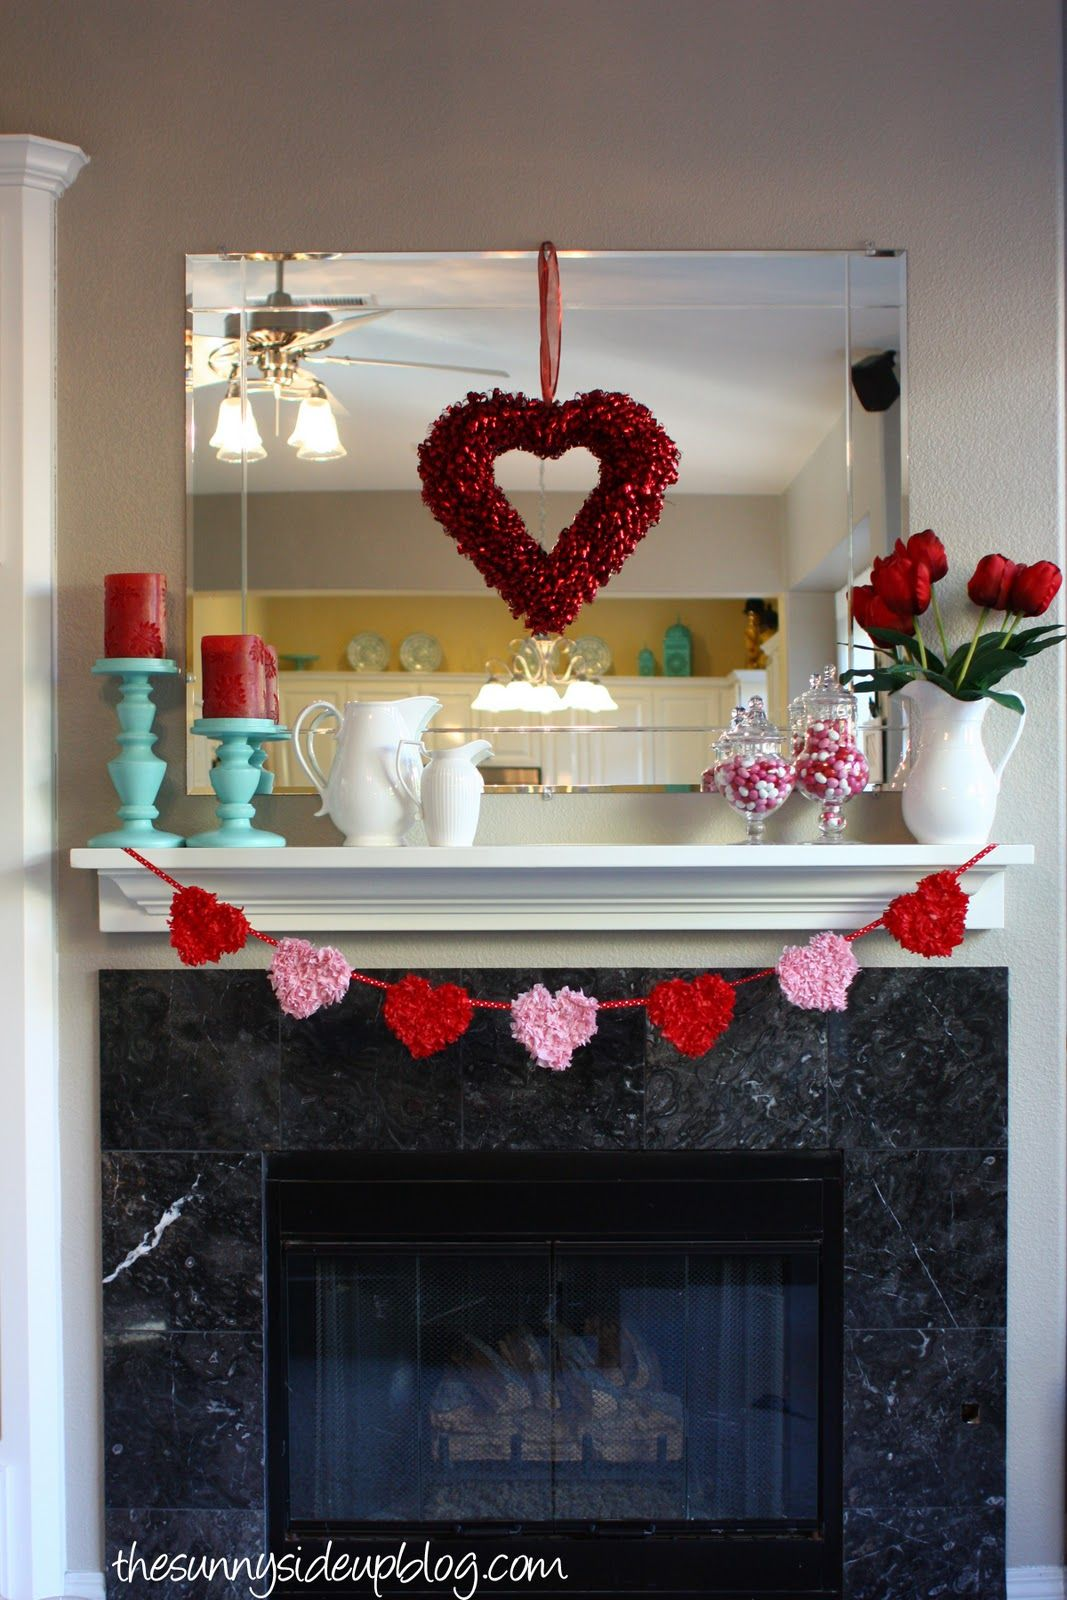 Winter And Valentines Mantel The Sunny Side Up Blog Valentine Decorations Valentines Day Decorations Valentines Mantle